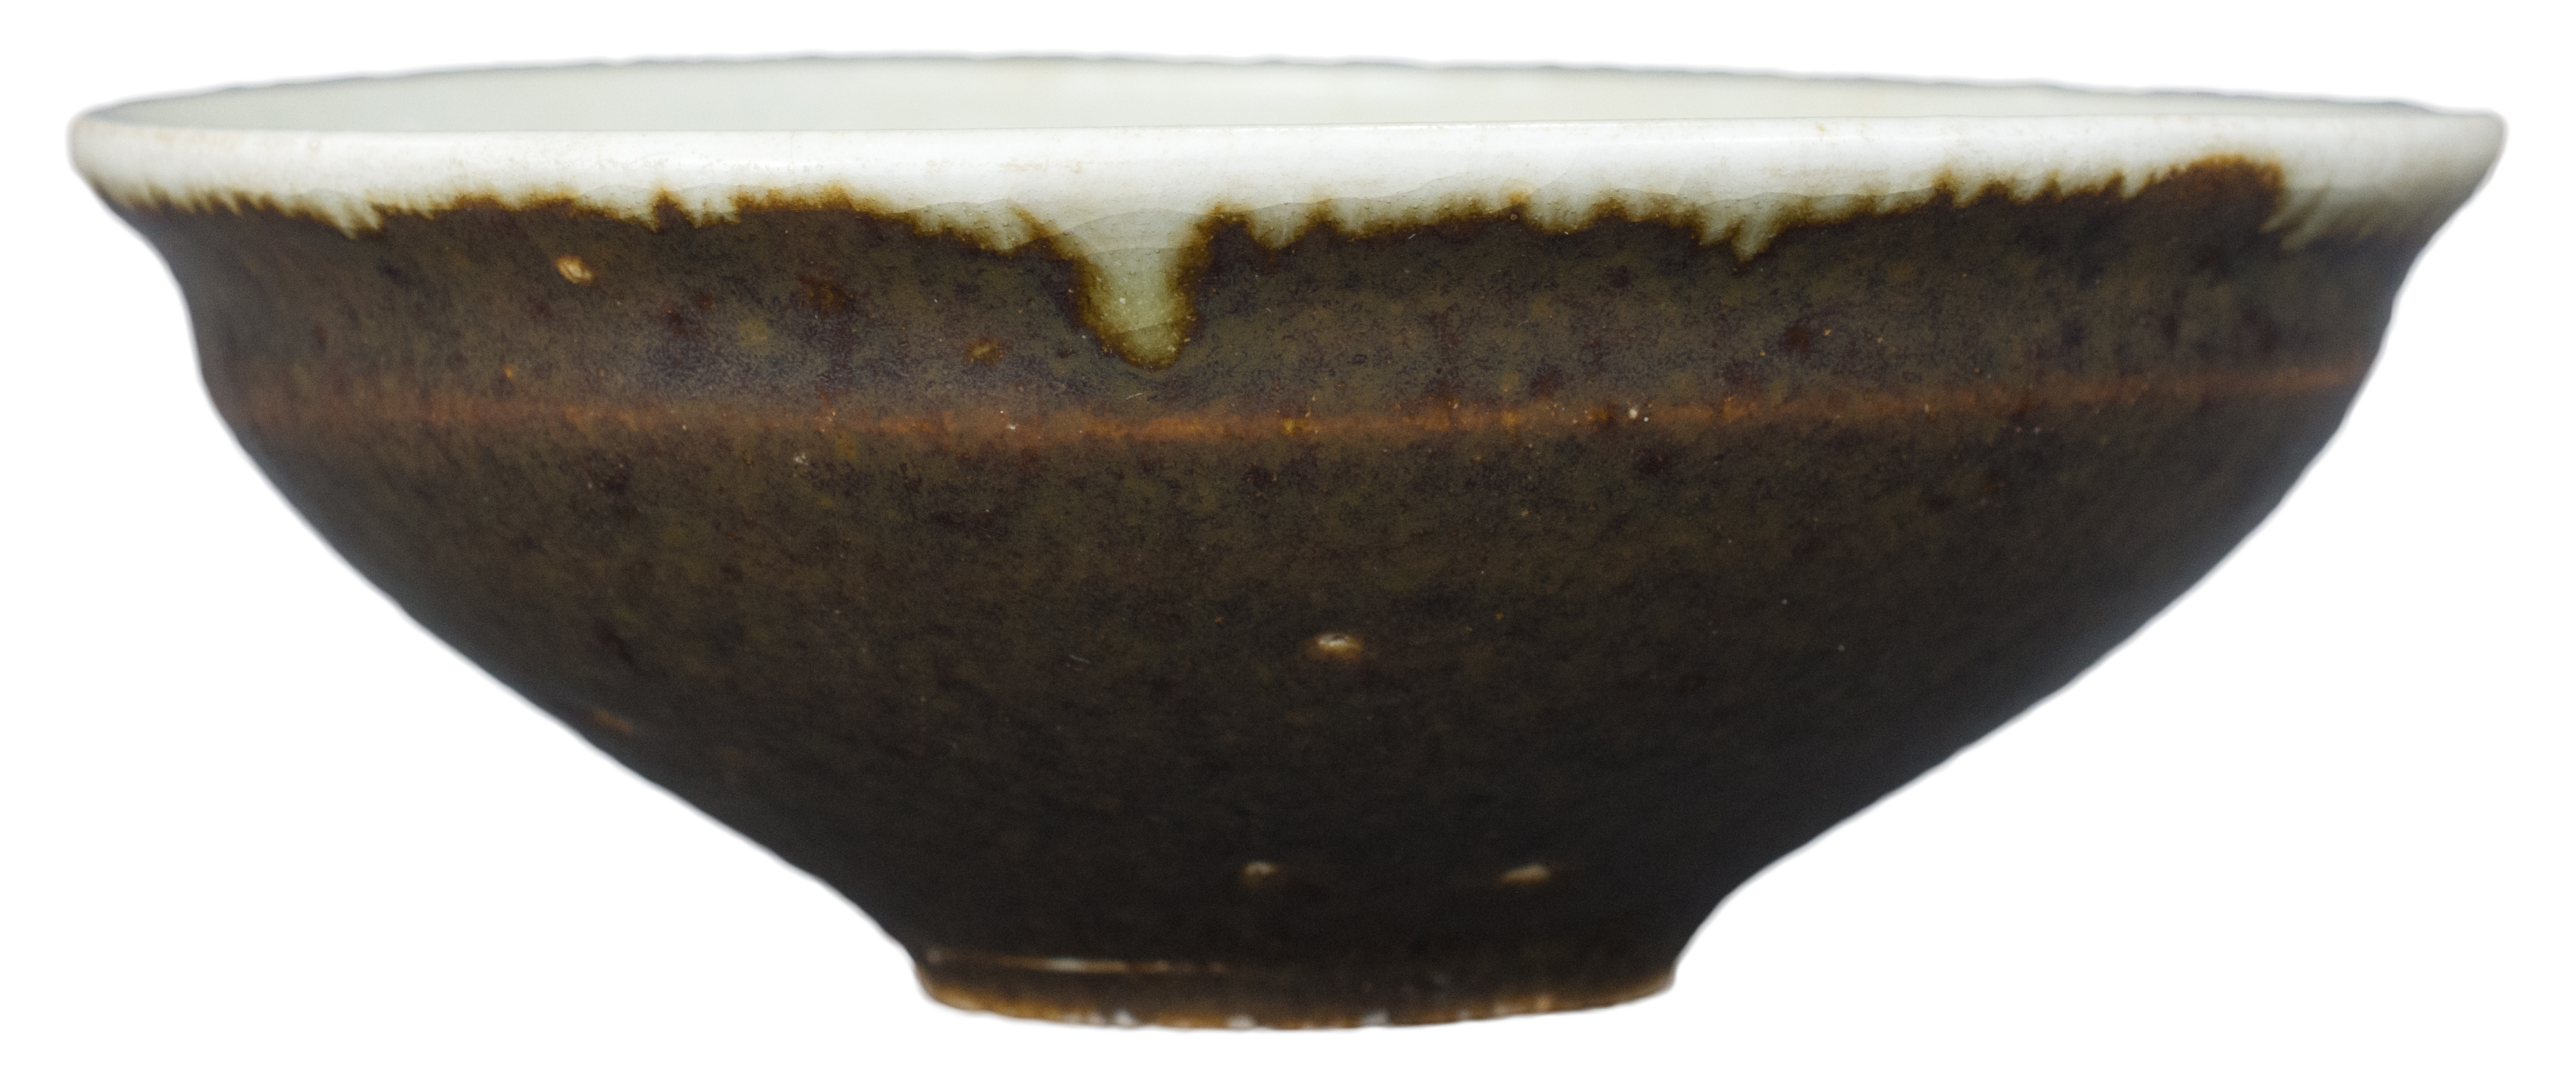 Lot 20 - A Rare Chinese Glazed Porcelain Tea Bowl – Song Dynasty or Later